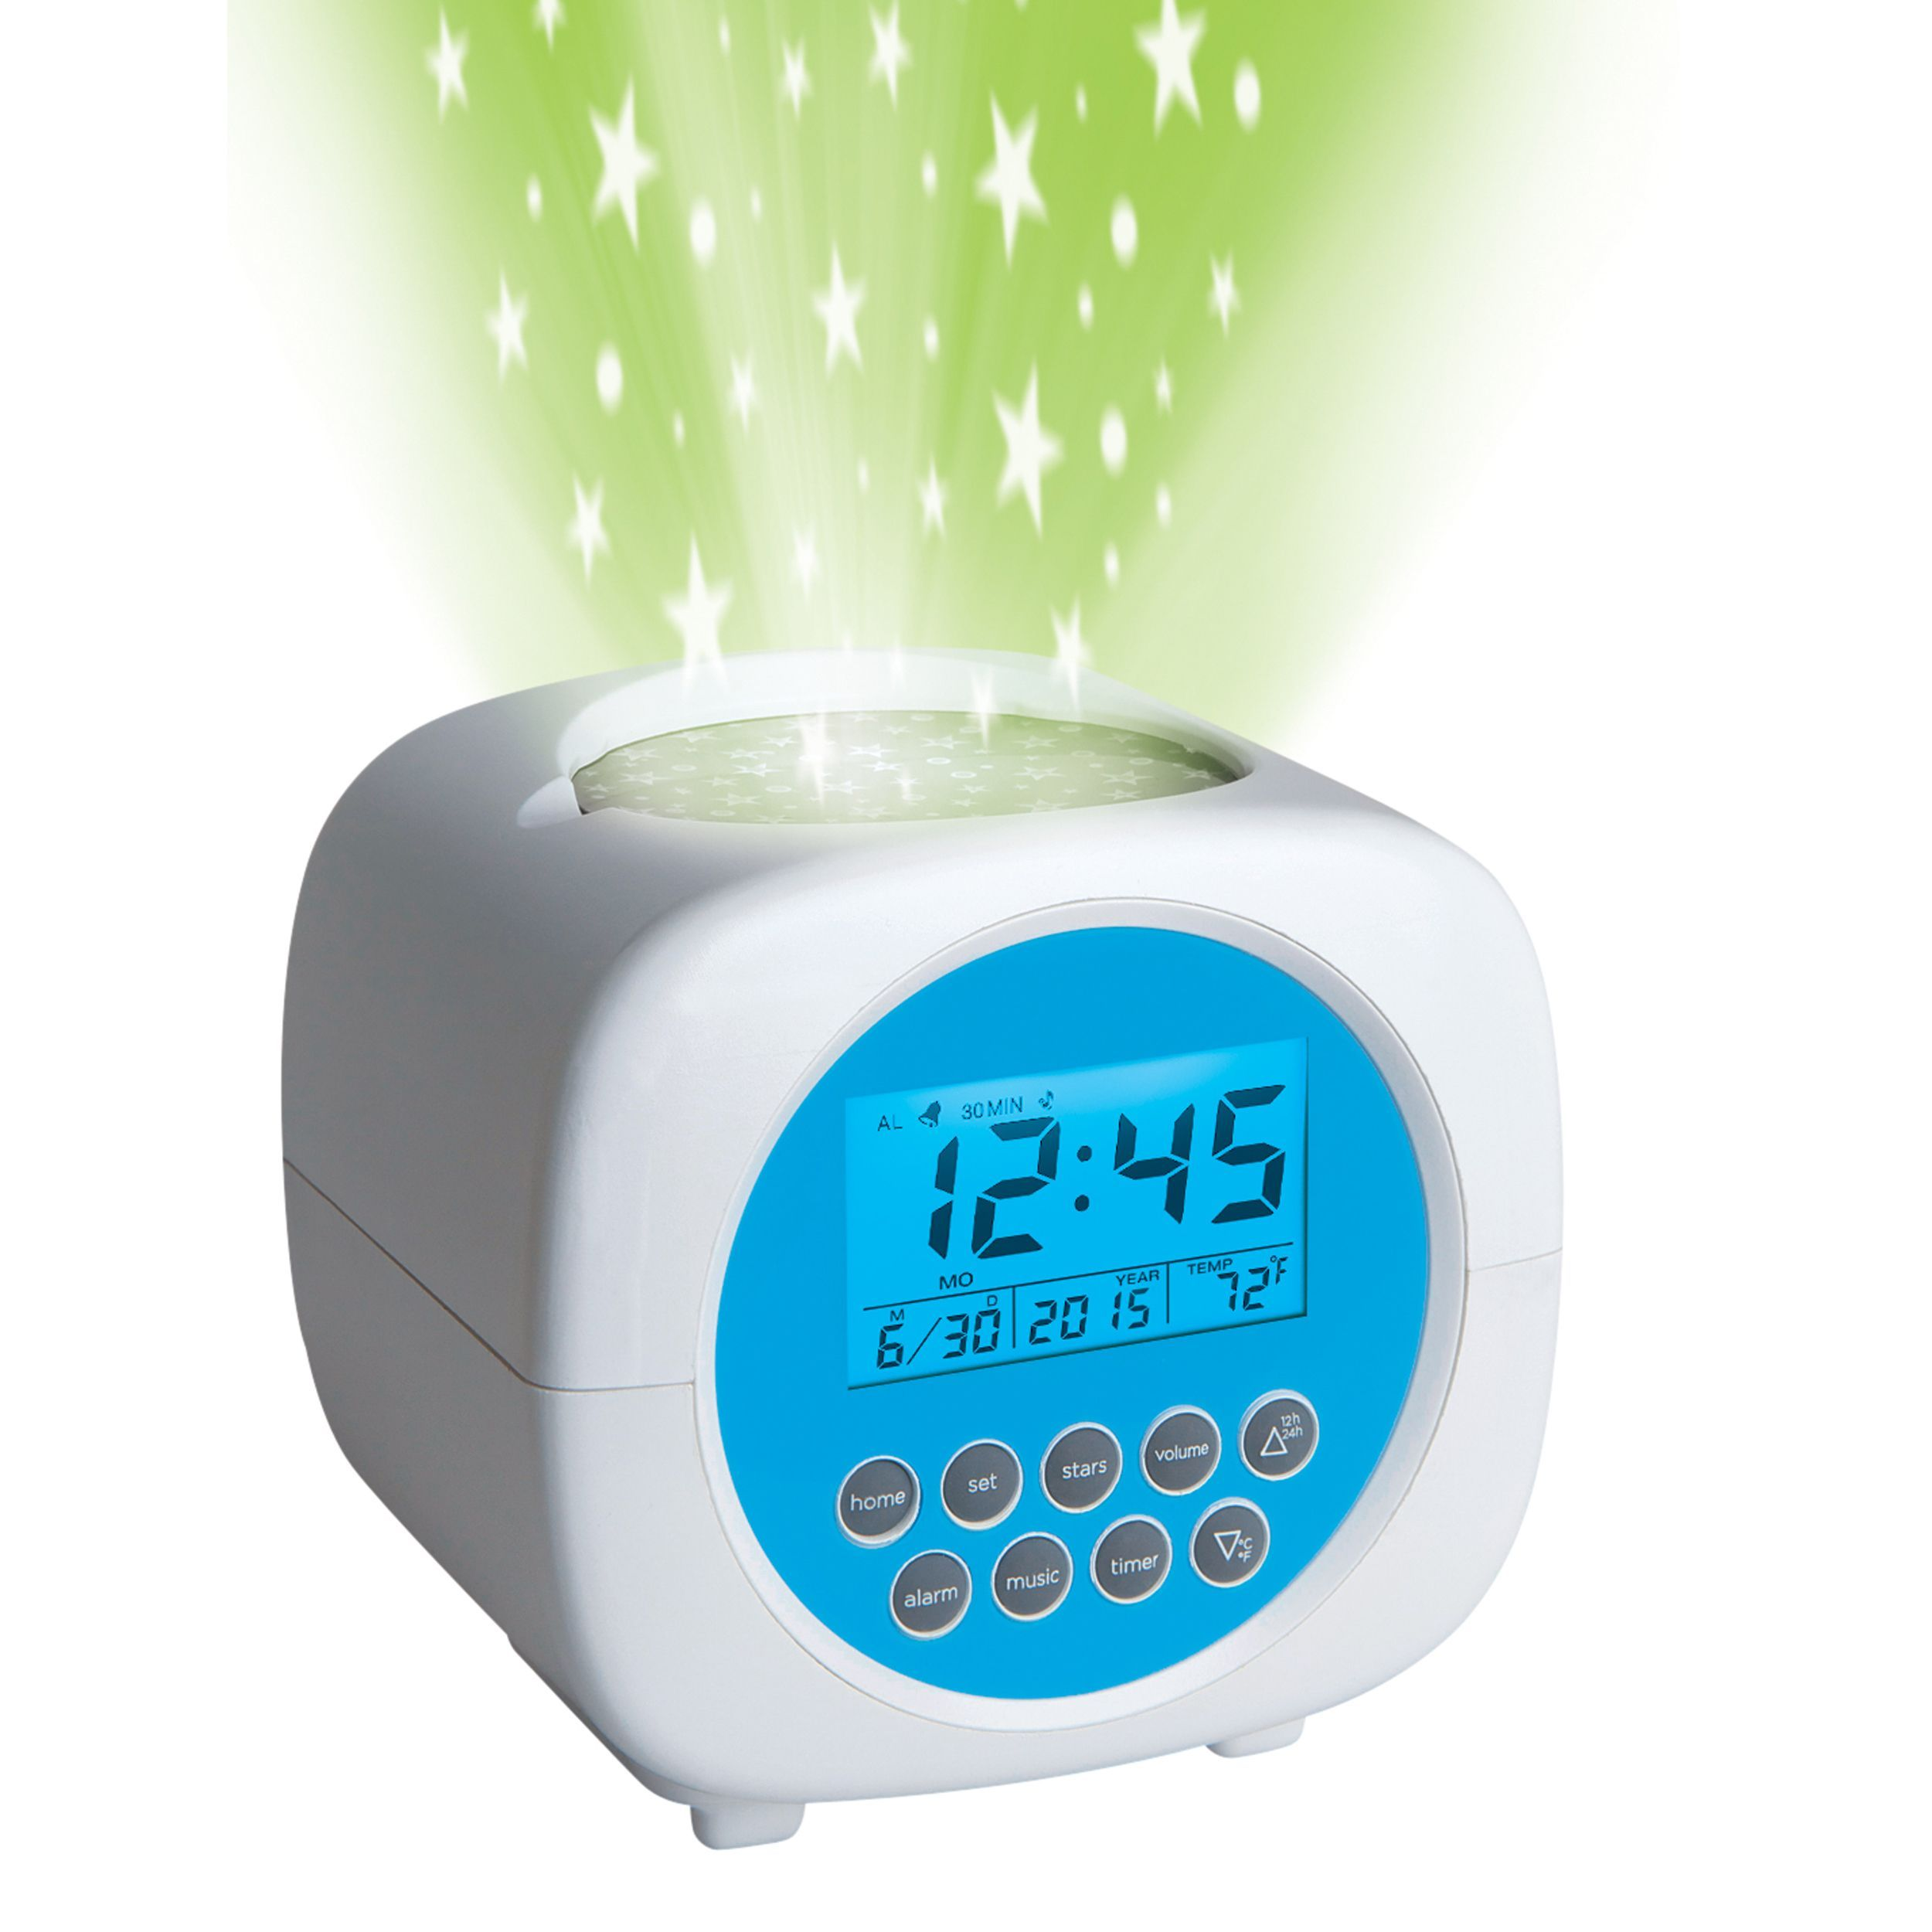 Light up your room with the discovery kids sound machine projection light up your room with the discovery kids sound machine projection alarm clock this clock mozeypictures Image collections